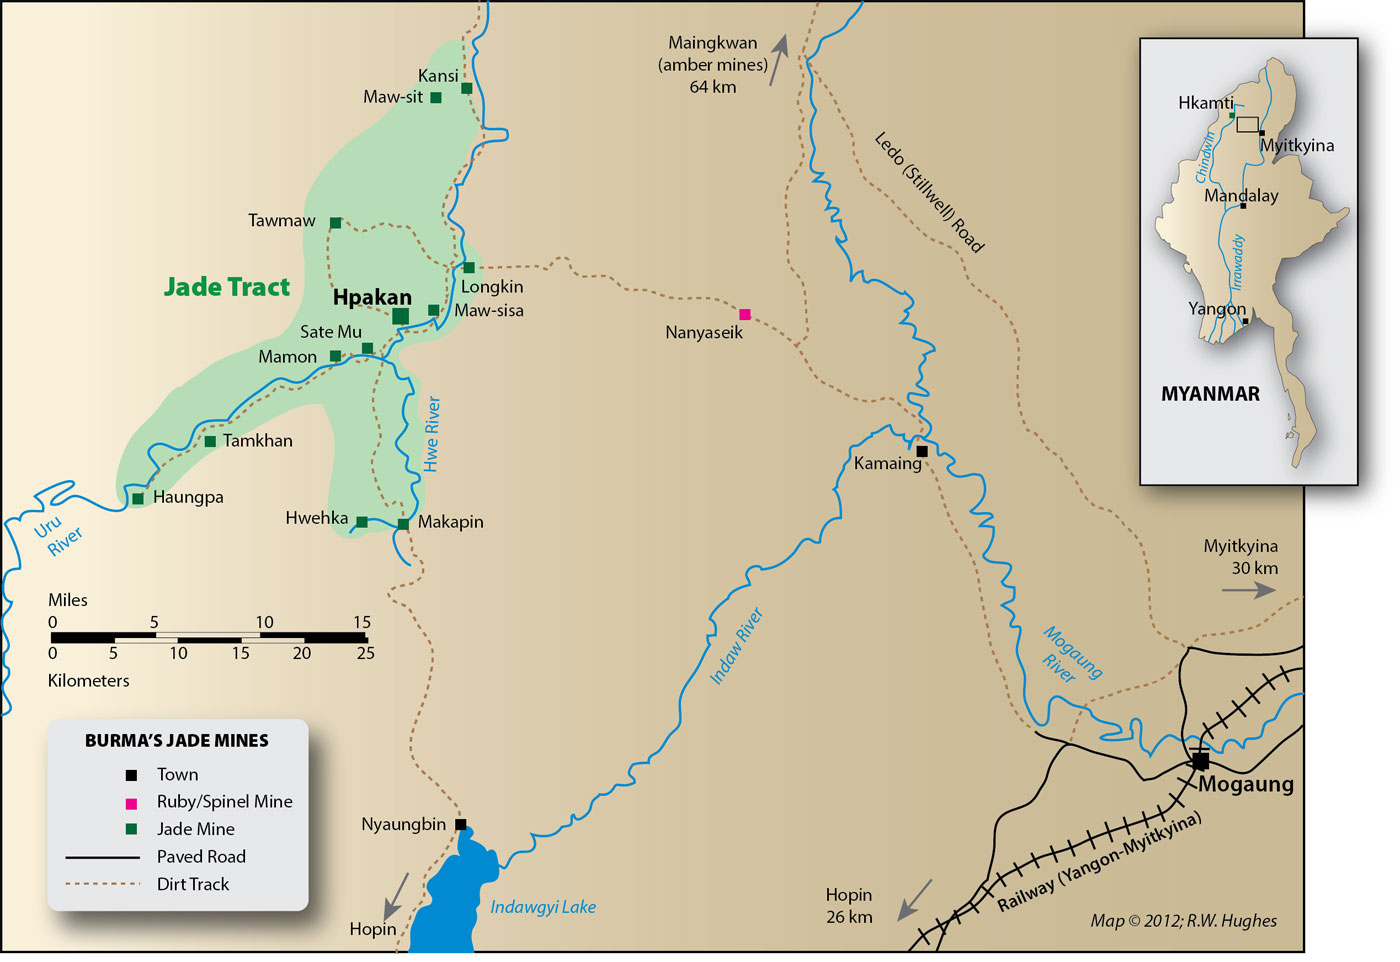 Map of Burma's jade mines